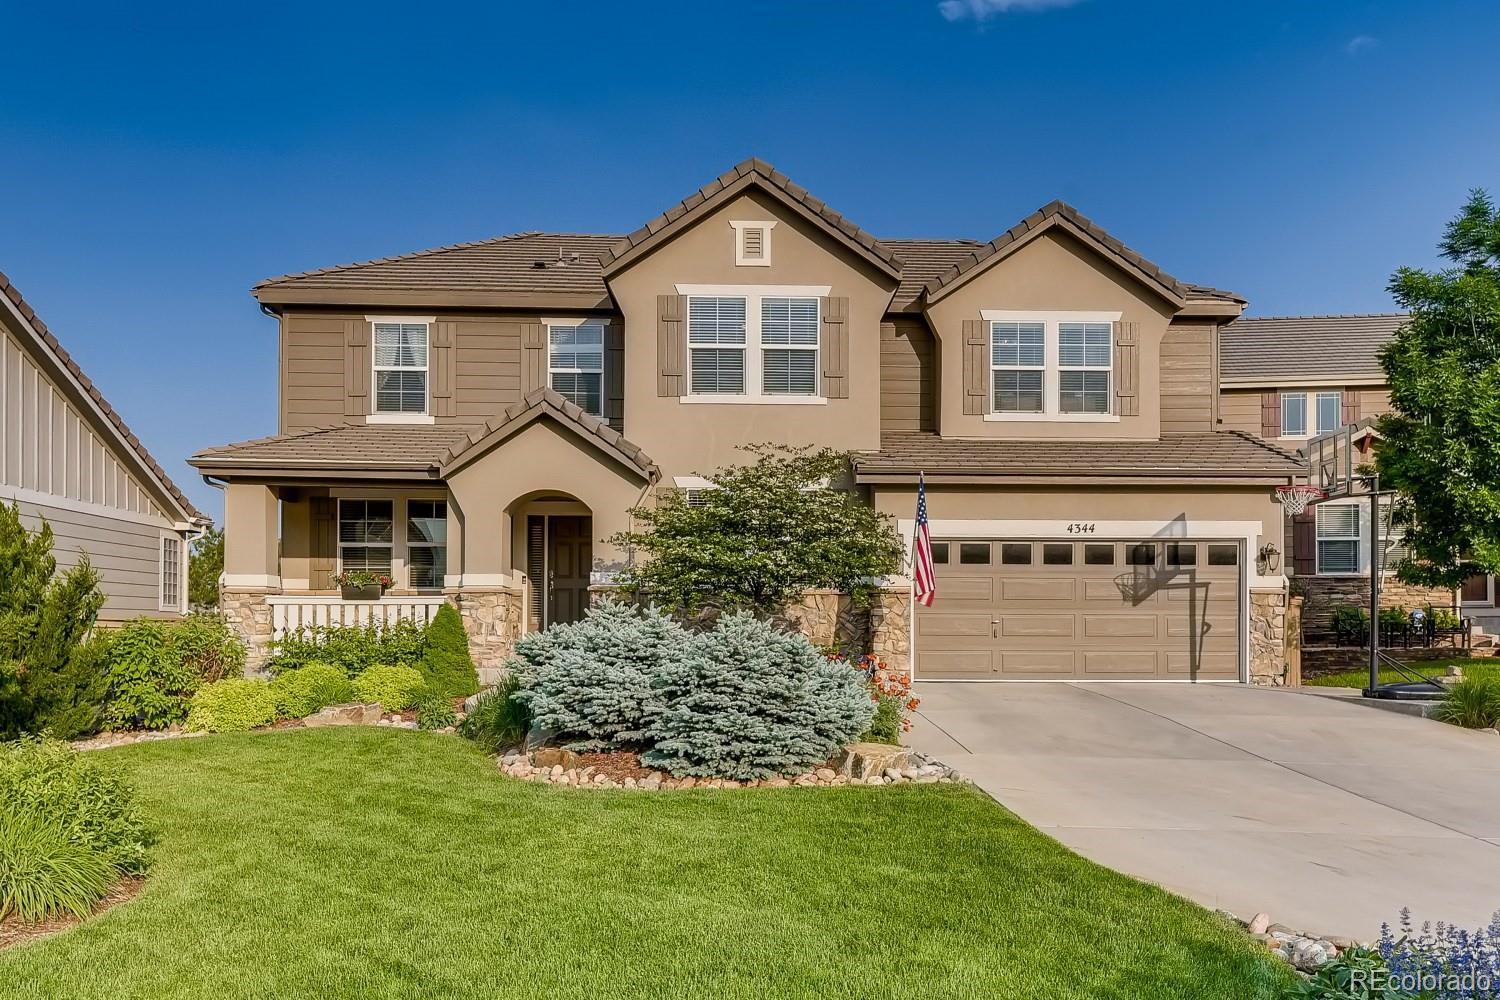 4344 Ivycrest Point, Highlands Ranch, CO 80130 - #: 7459080